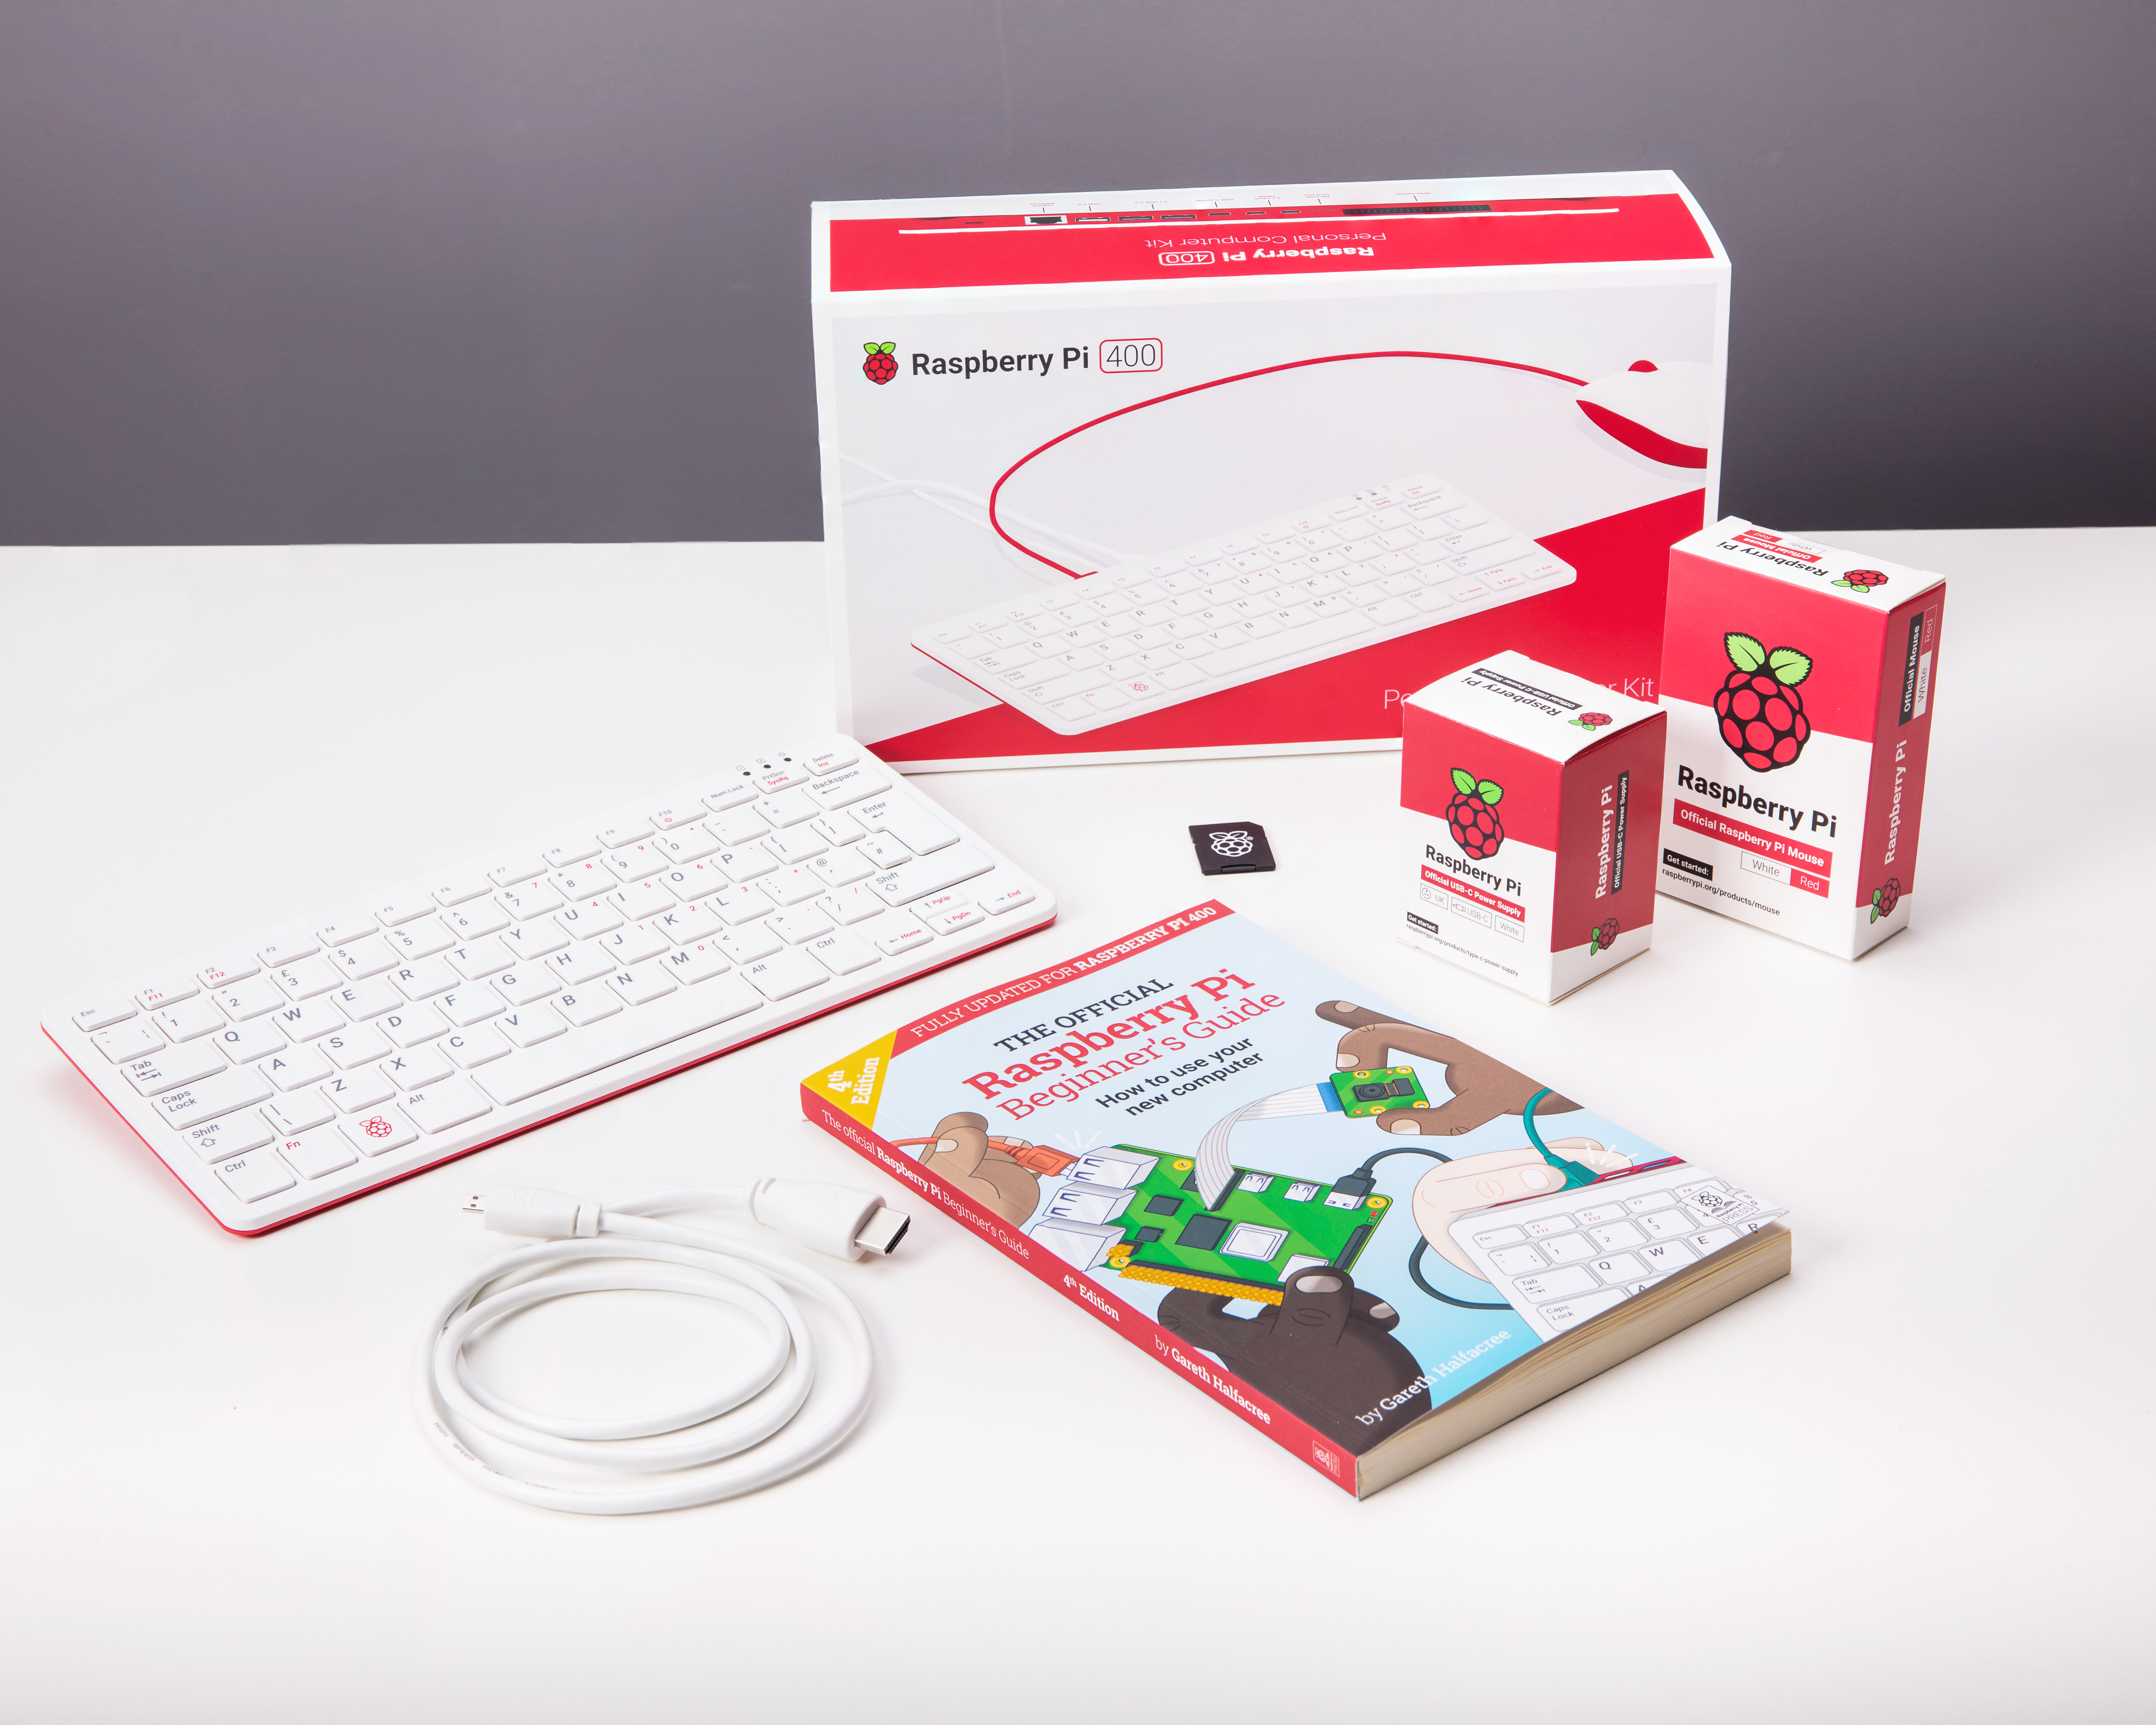 Raspberry Pi 400 All-in-One Personal Computer Kit - UK Keyboard Layout